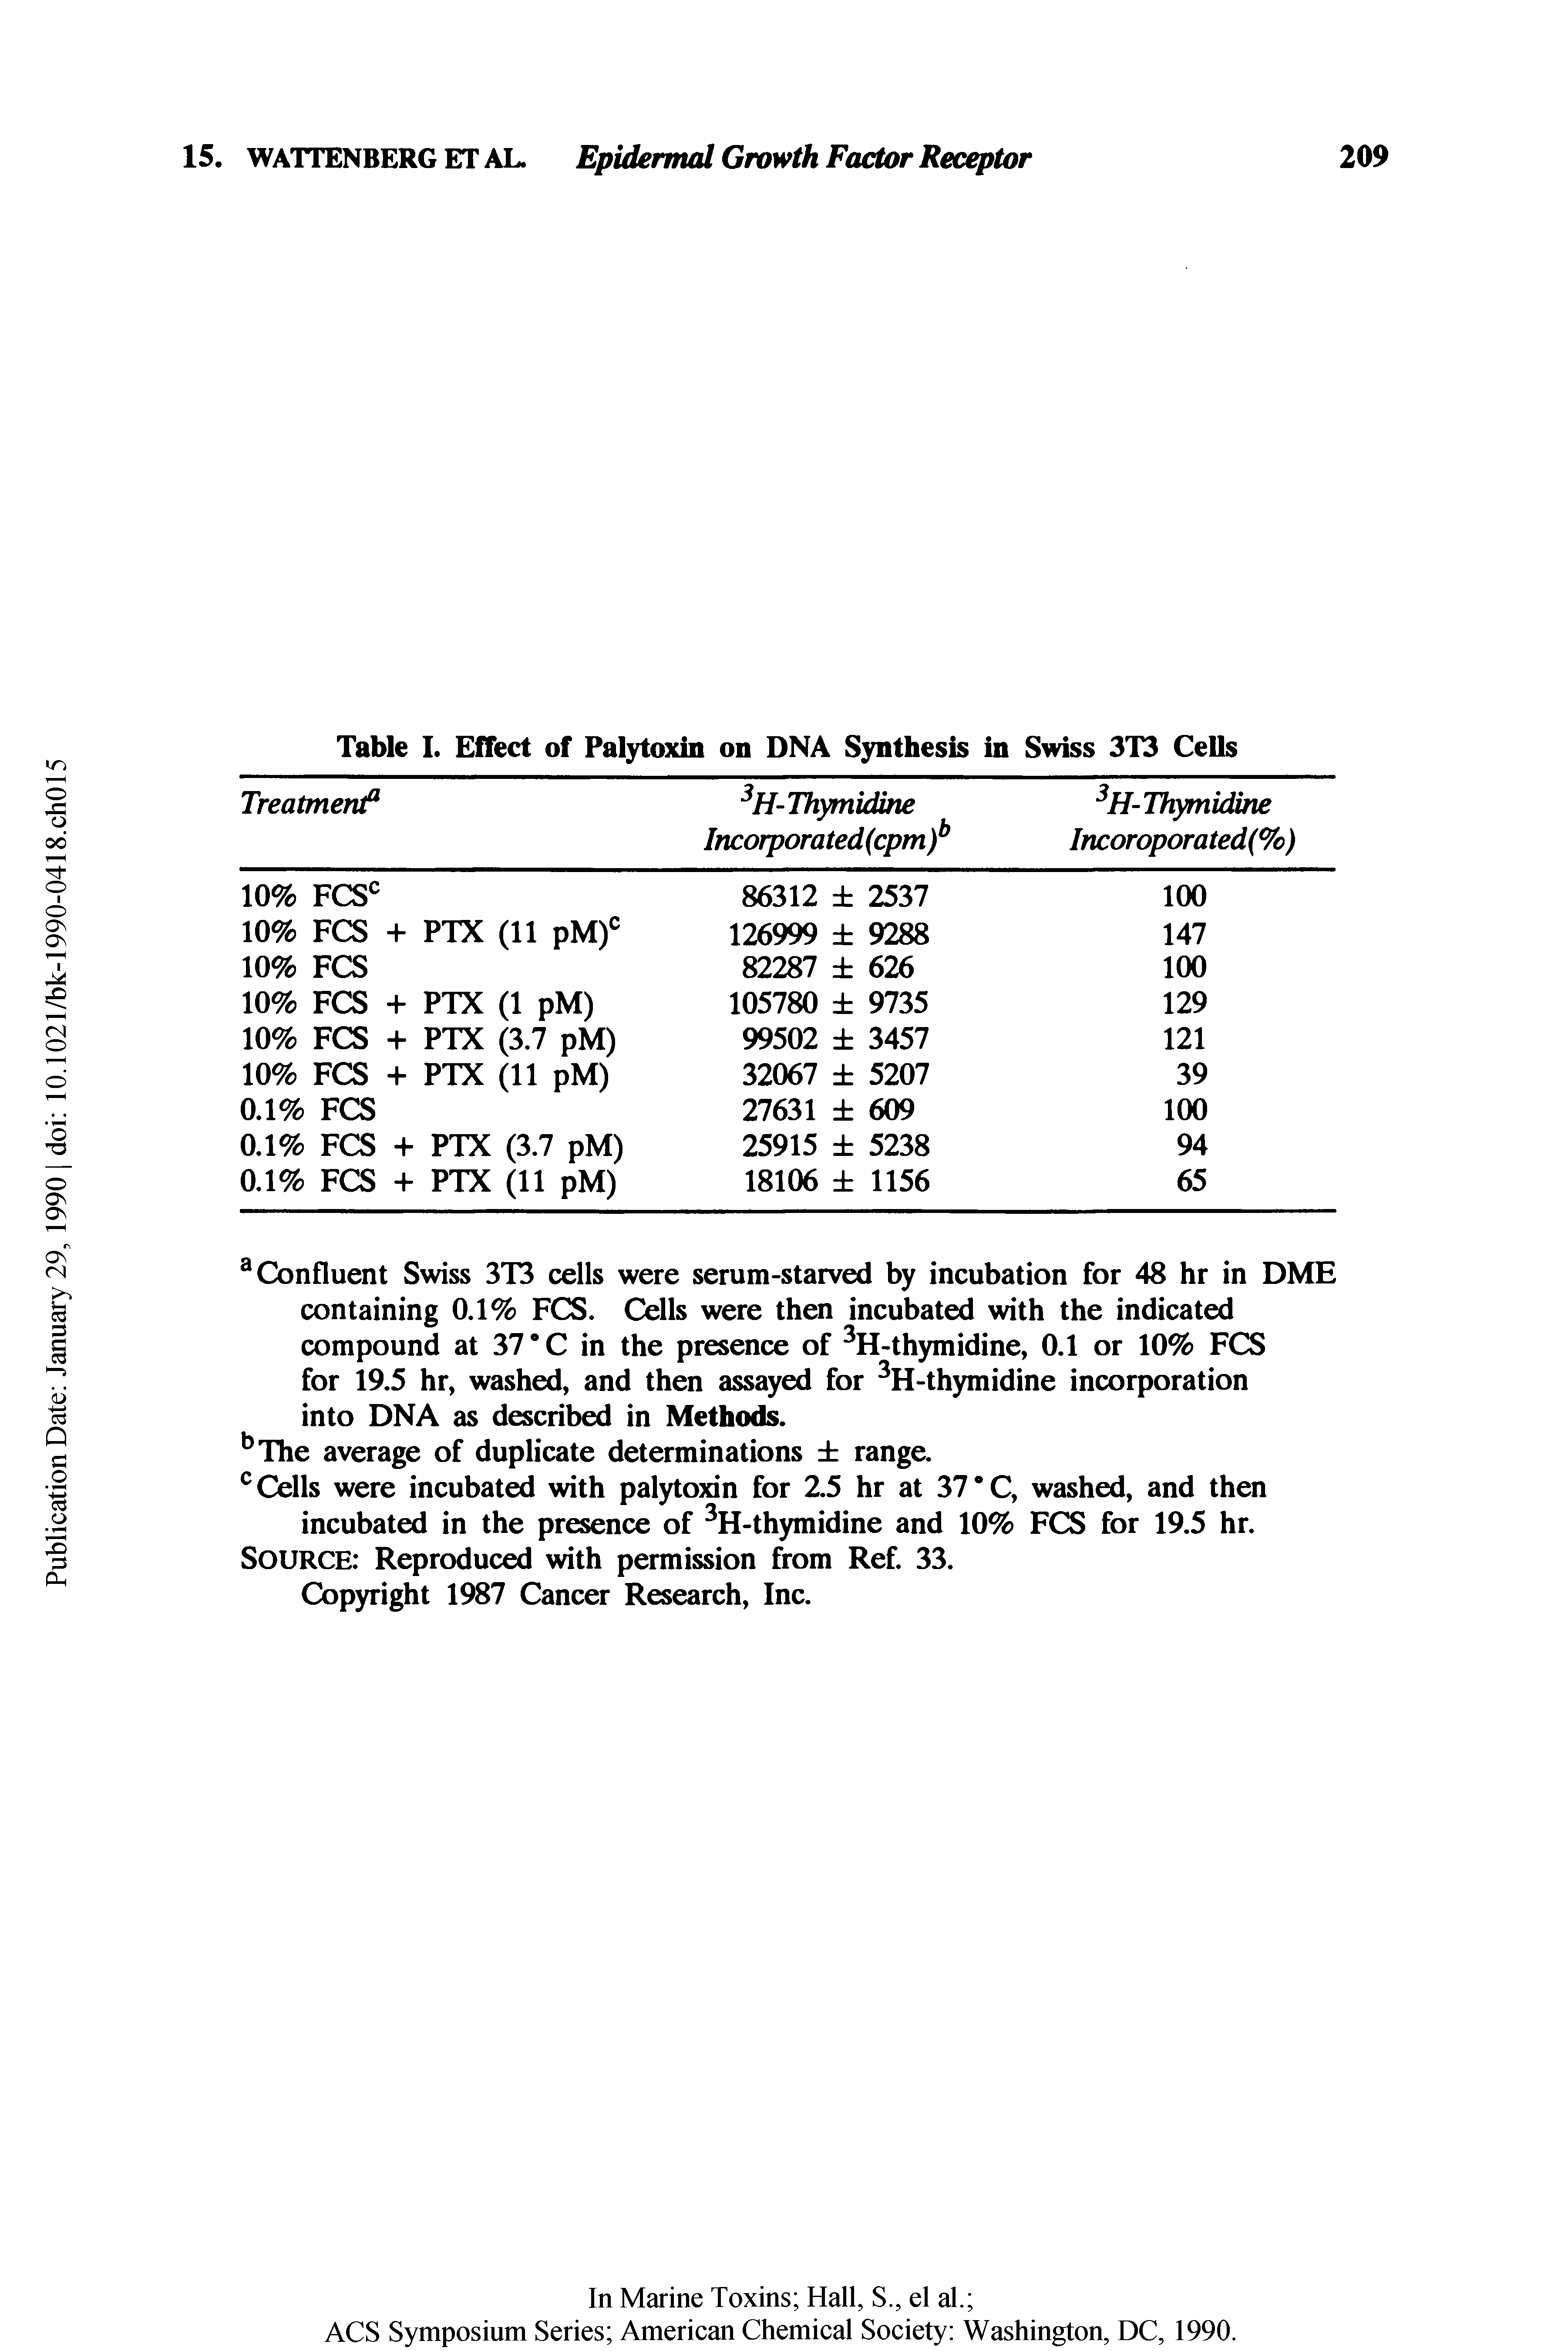 Table I. Effect of Palytoxin on DNA Synthesis in Swiss 3T3 Cells...